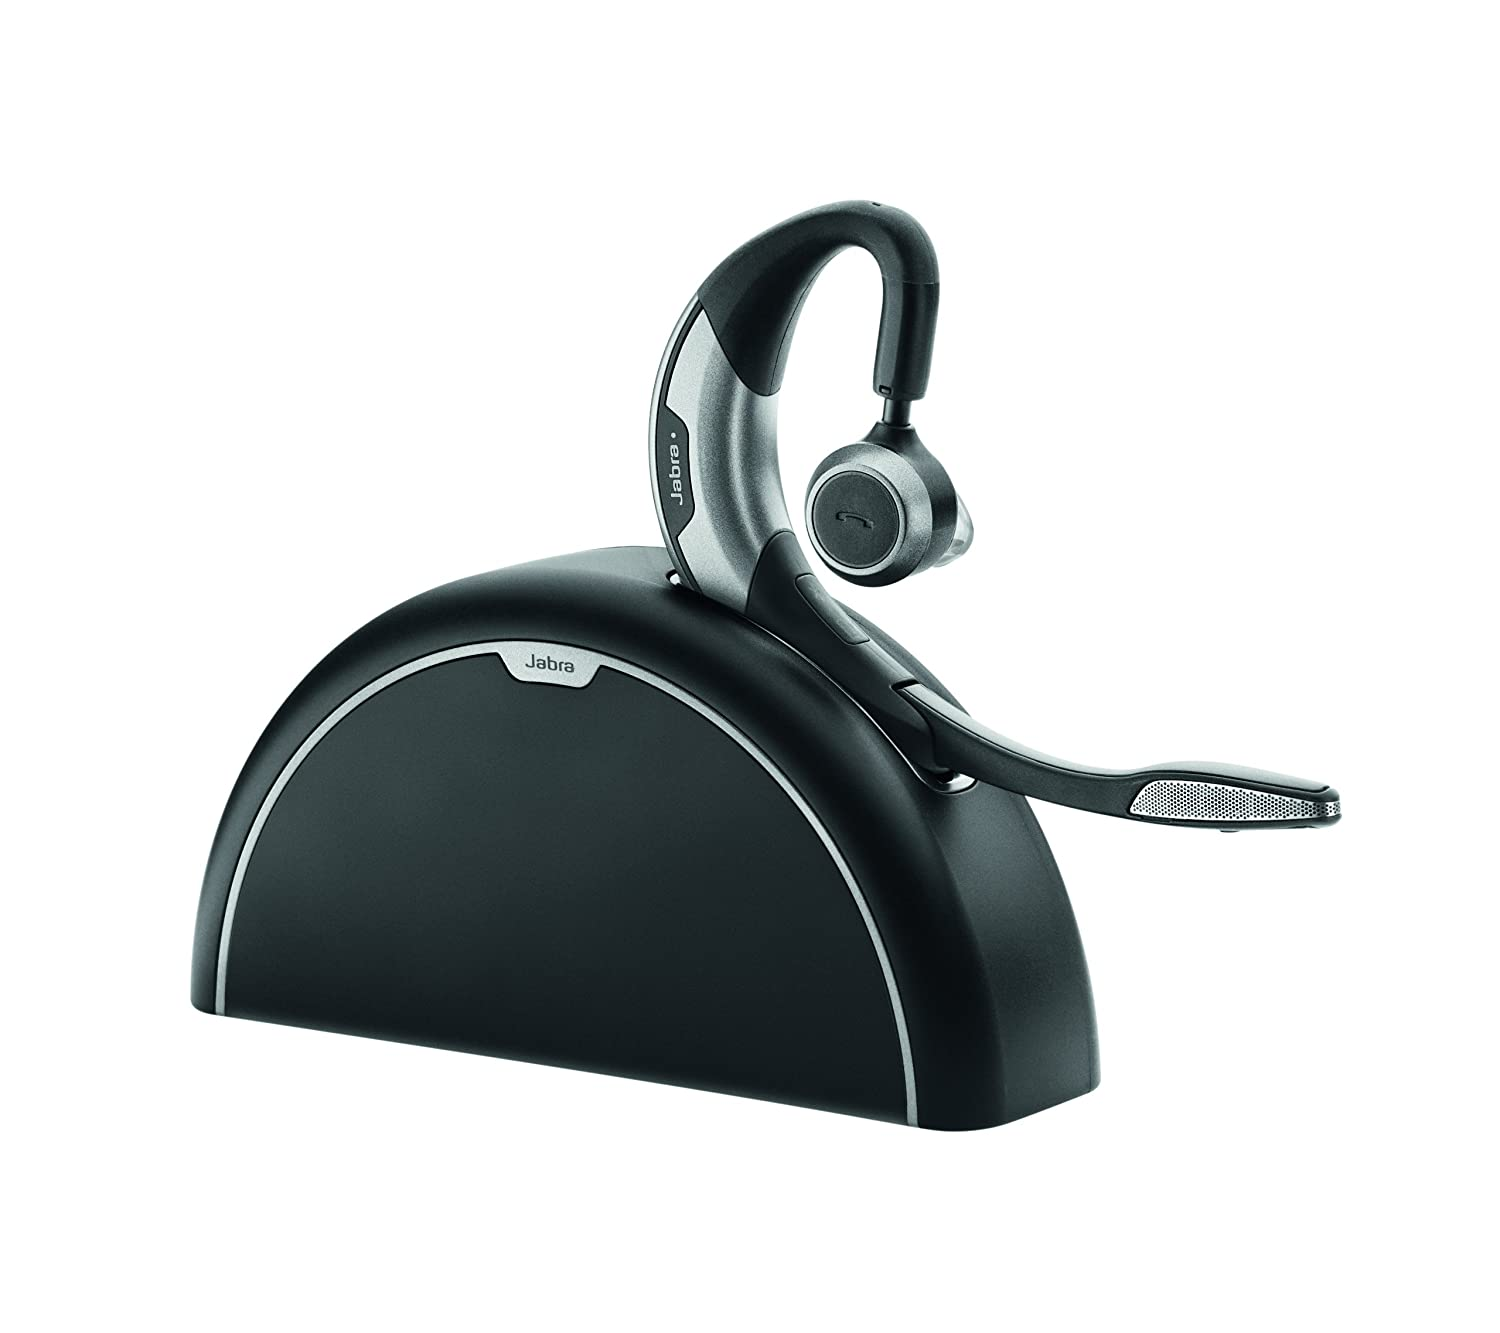 397821e6a80 Amazon.com: 2QZ8317 - Jabra MOTION UC with Travel amp; Charge Kit MS: Cell  Phones & Accessories